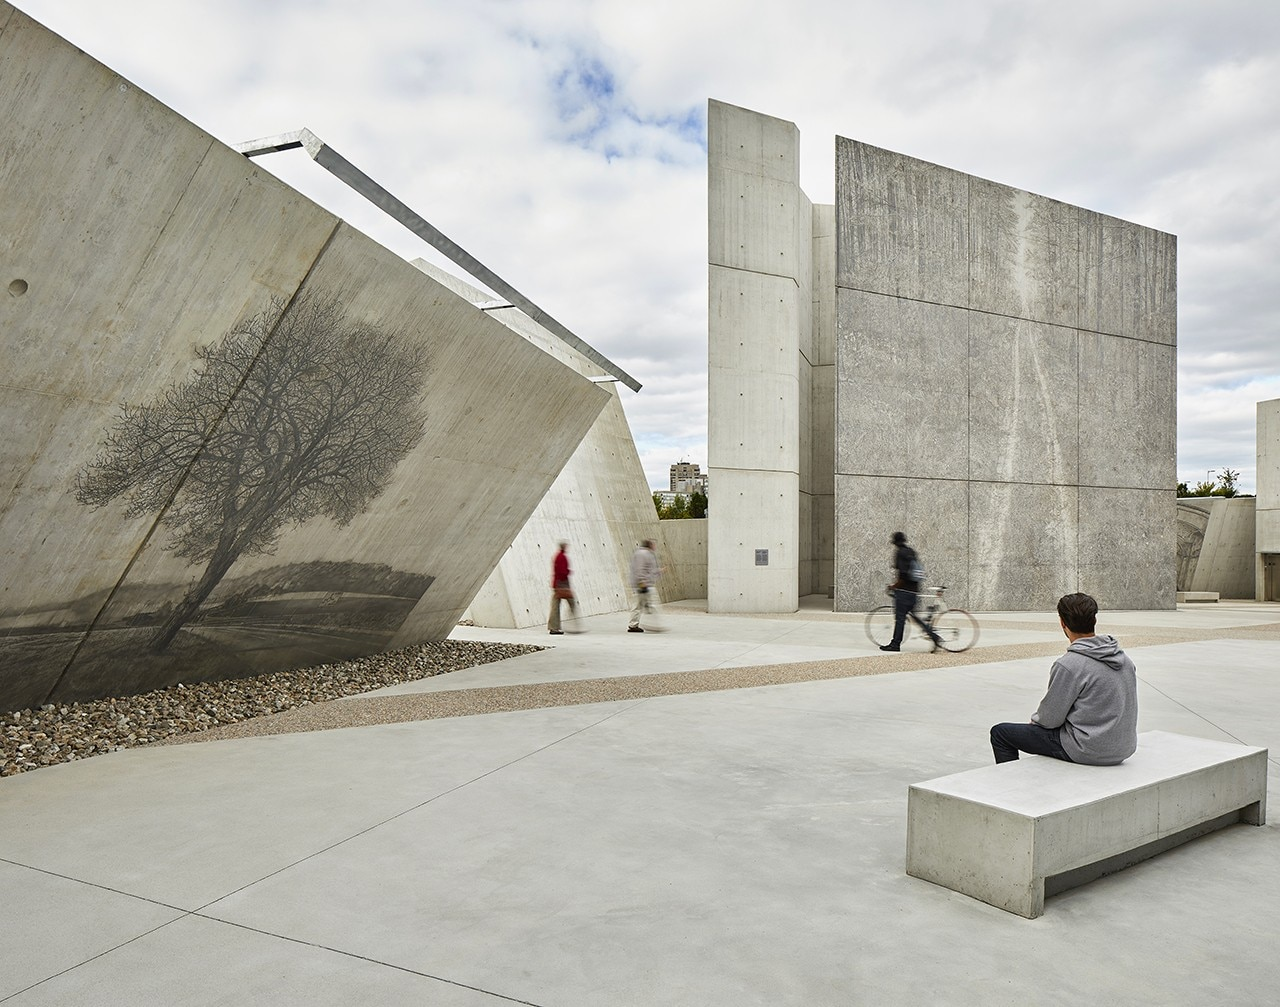 The Holocaust Monument By Libeskind Combines Architecture